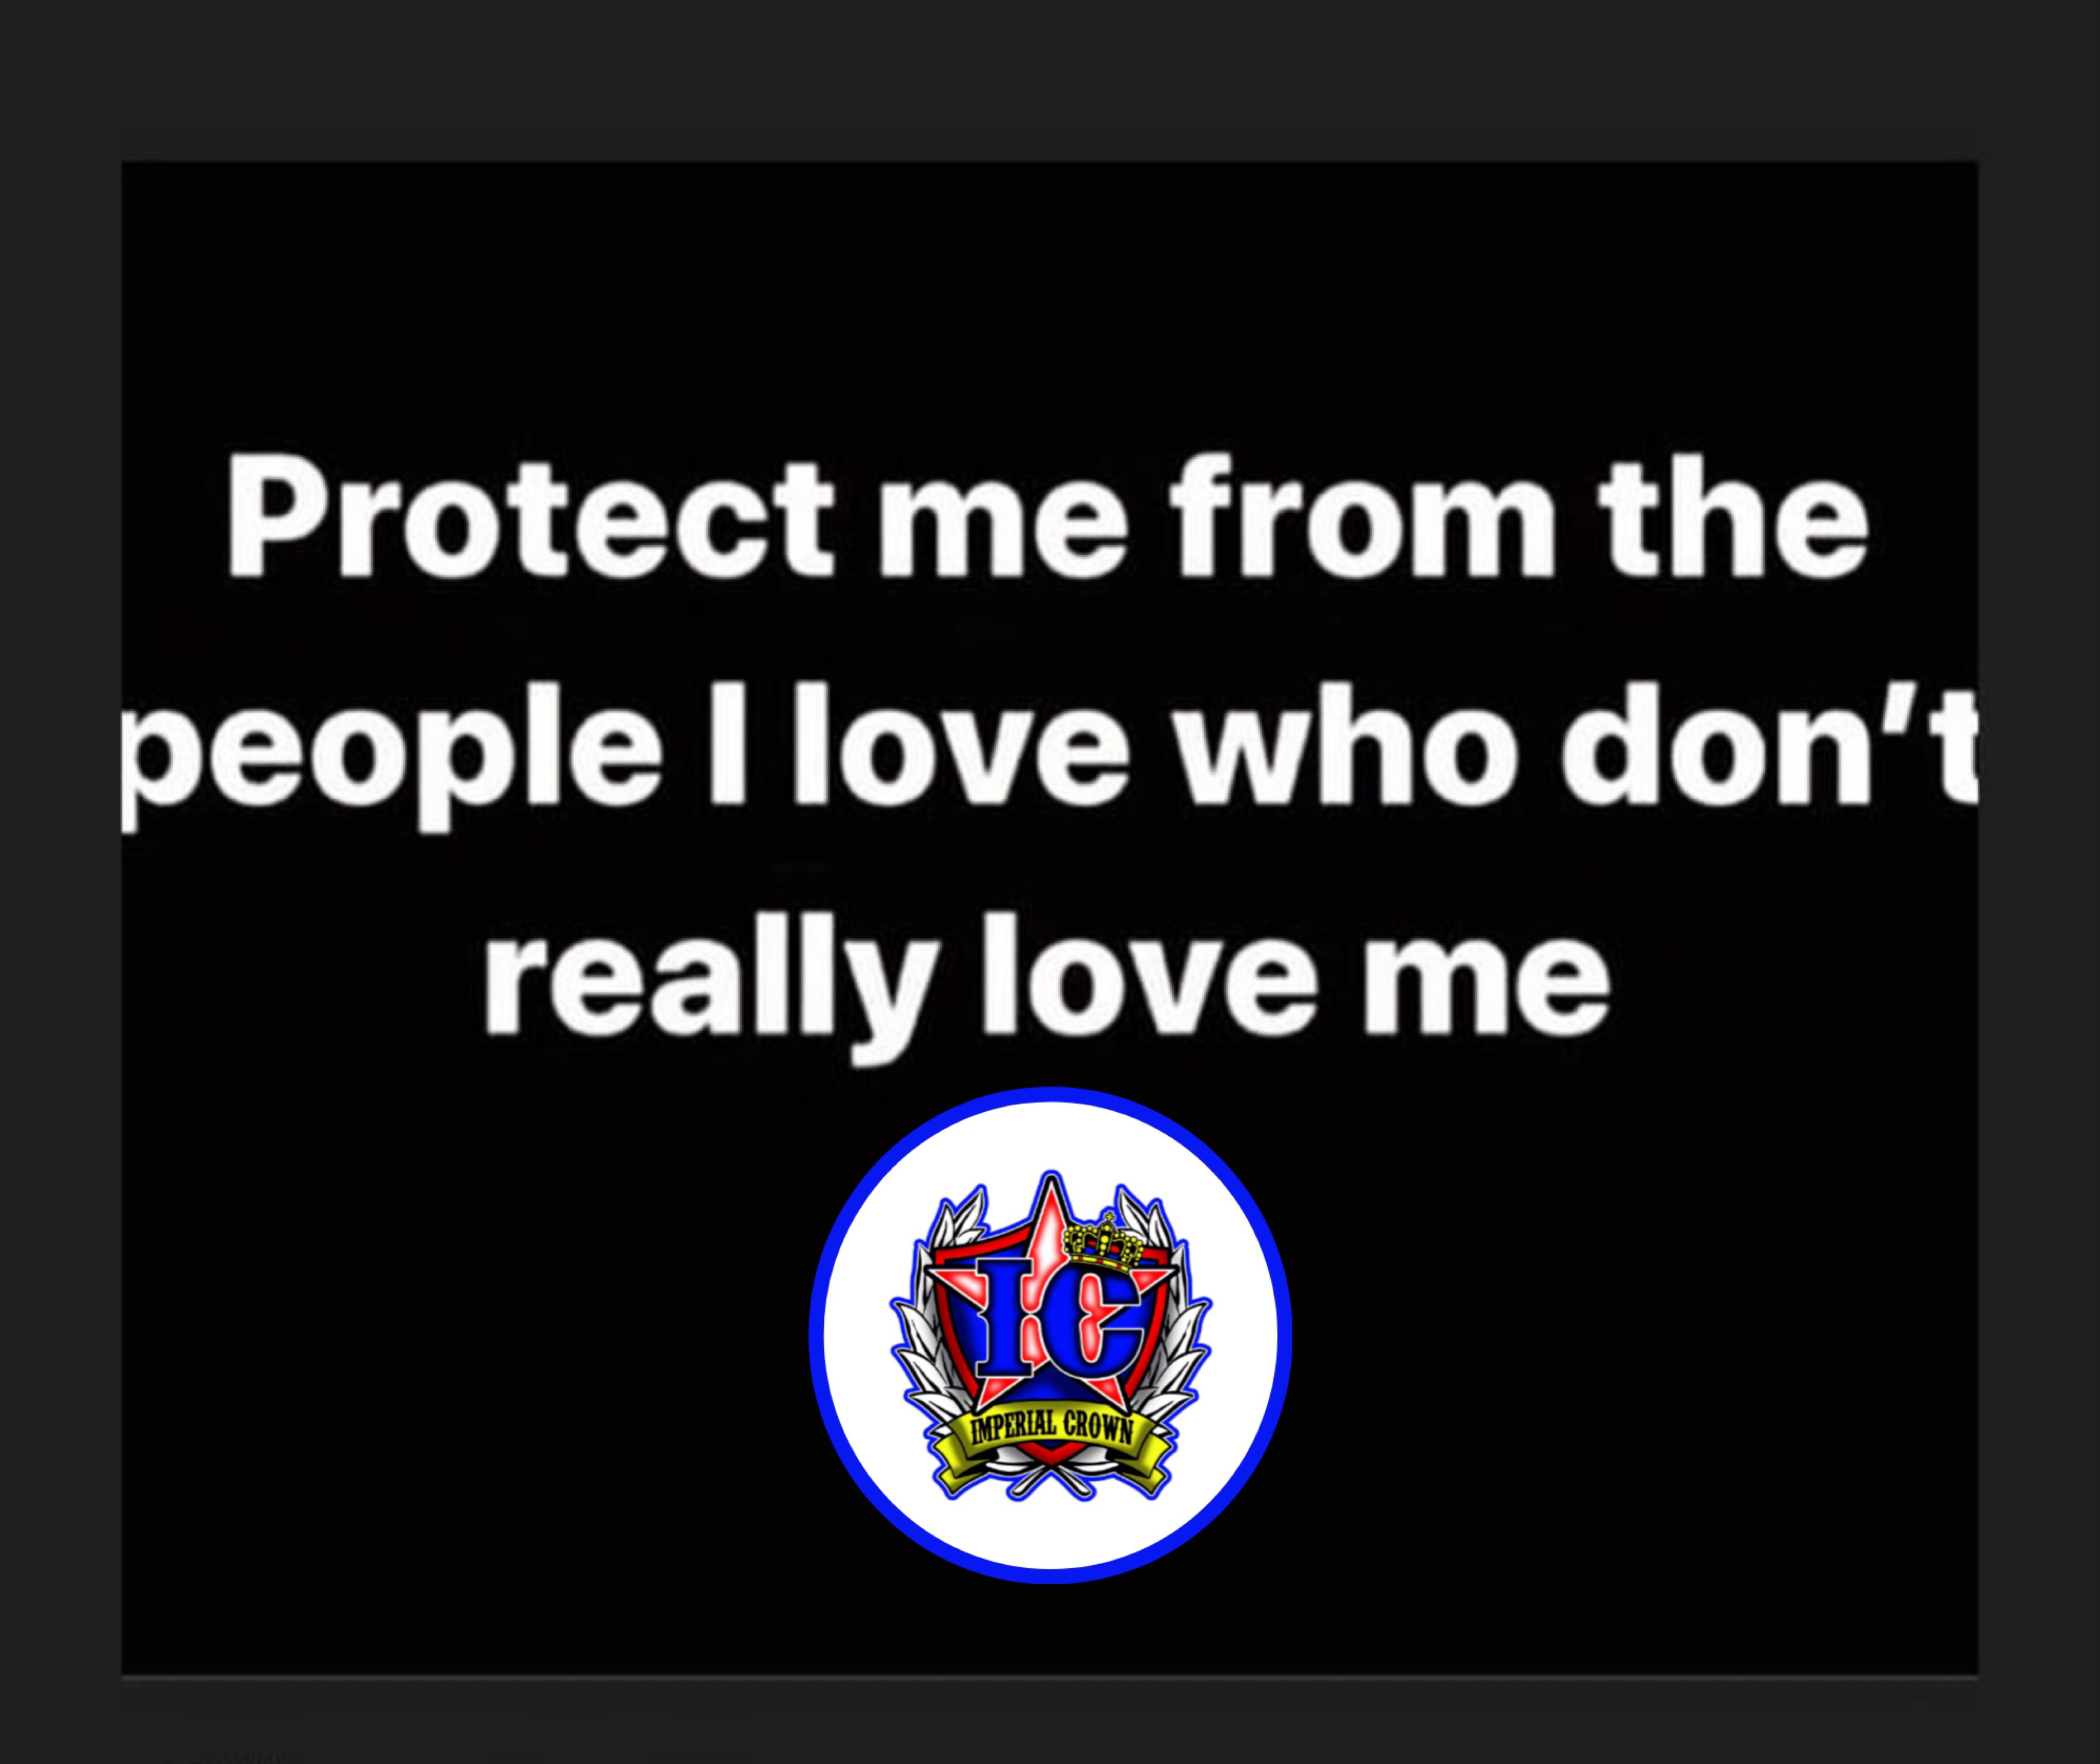 Protect me from the people I love who don't really love me